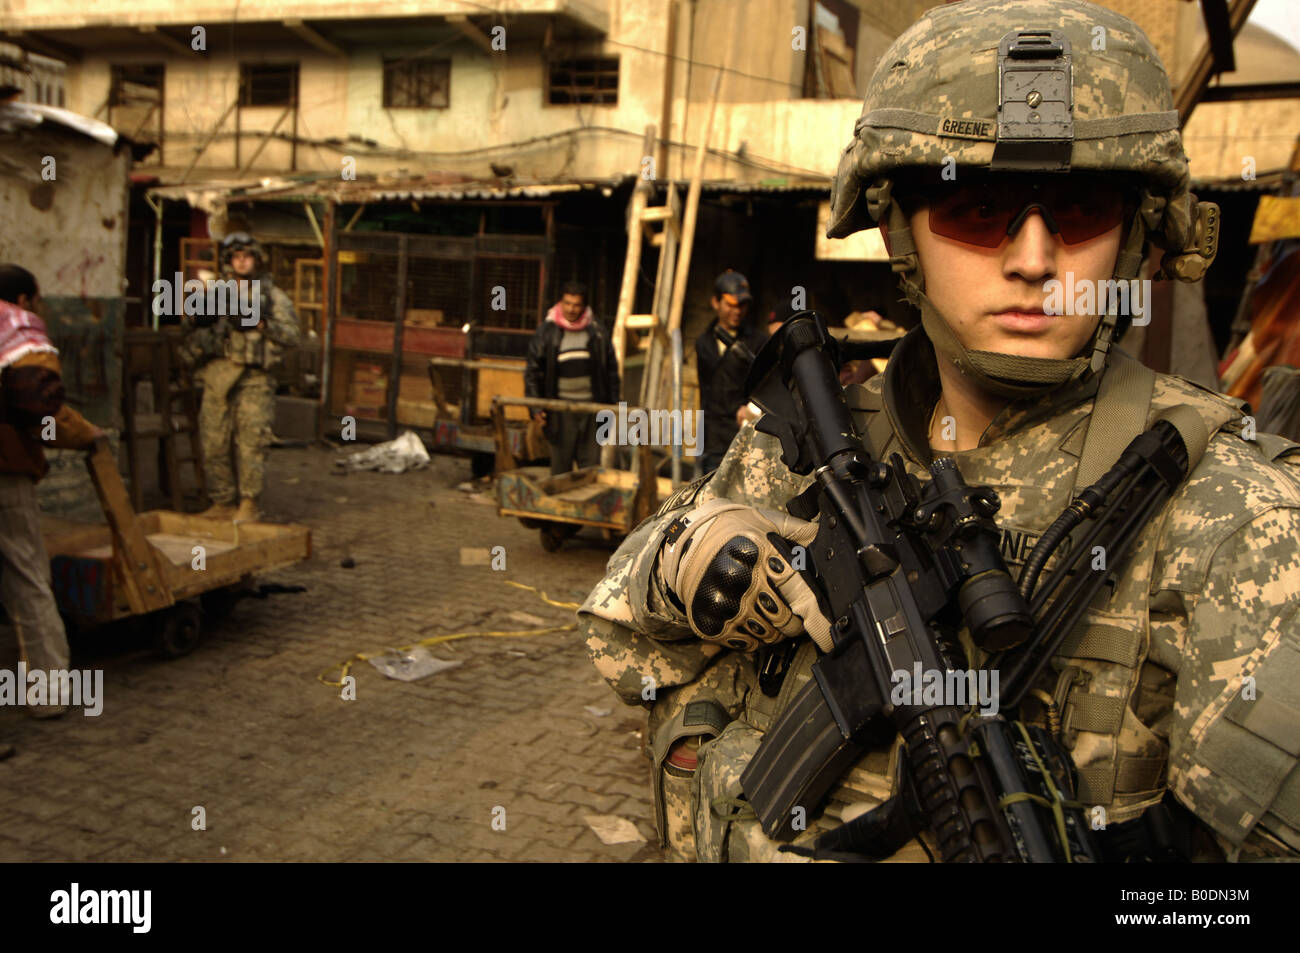 US Army soldier searches for improvised explosive device caches in Rusafa Baghdad Iraq on Jan 28 2008 - Stock Image